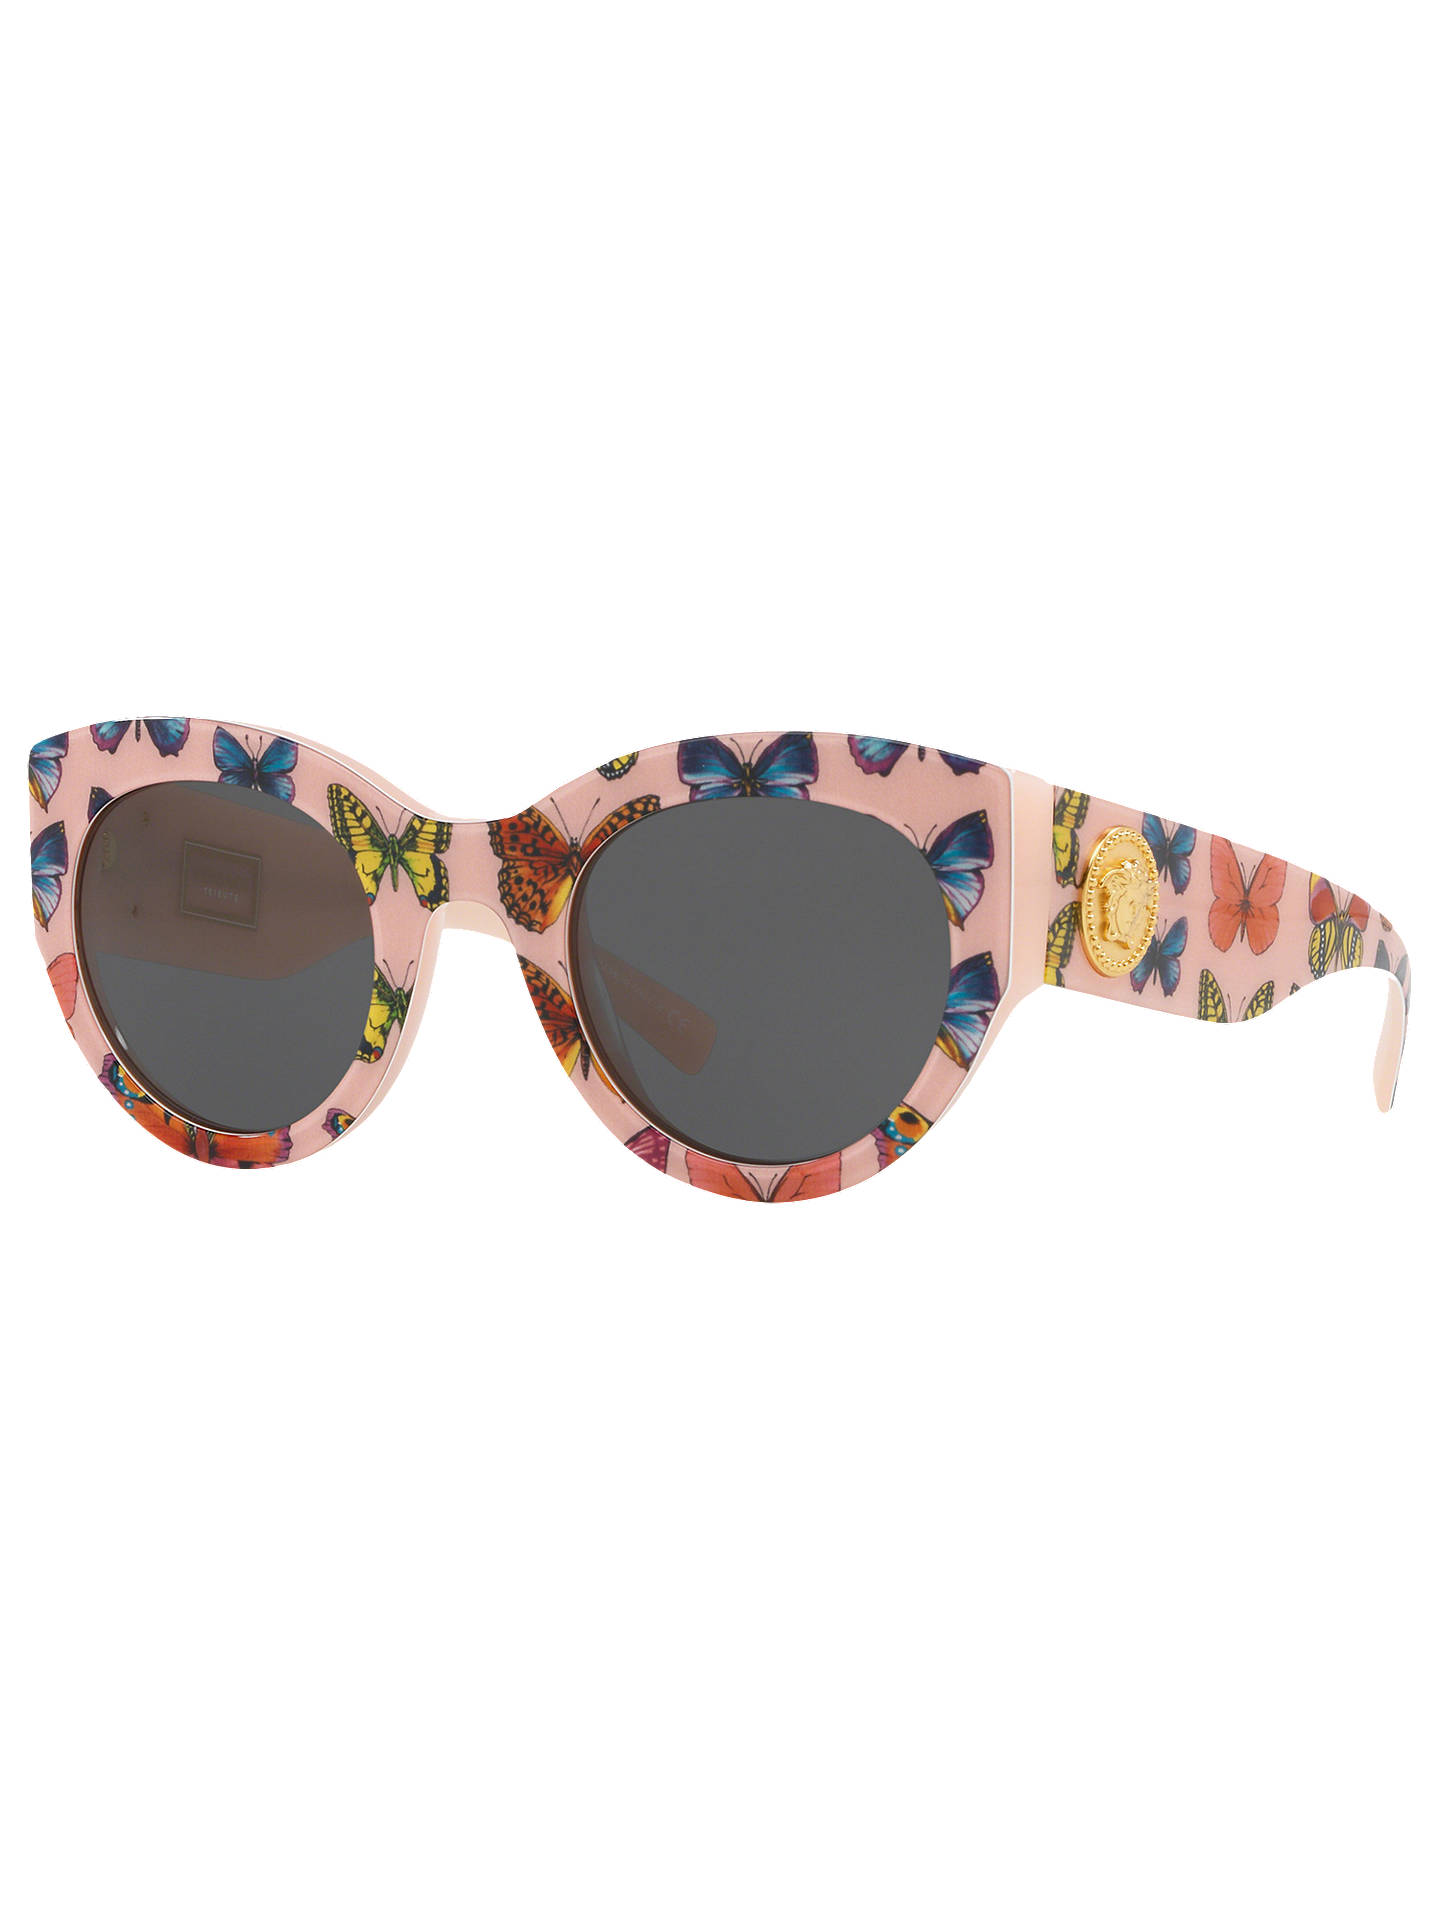 de88f92bcedf Buy Versace VE4353 Women's Cat's Eye Sunglasses, Pink Pattern/Grey Online  at johnlewis.